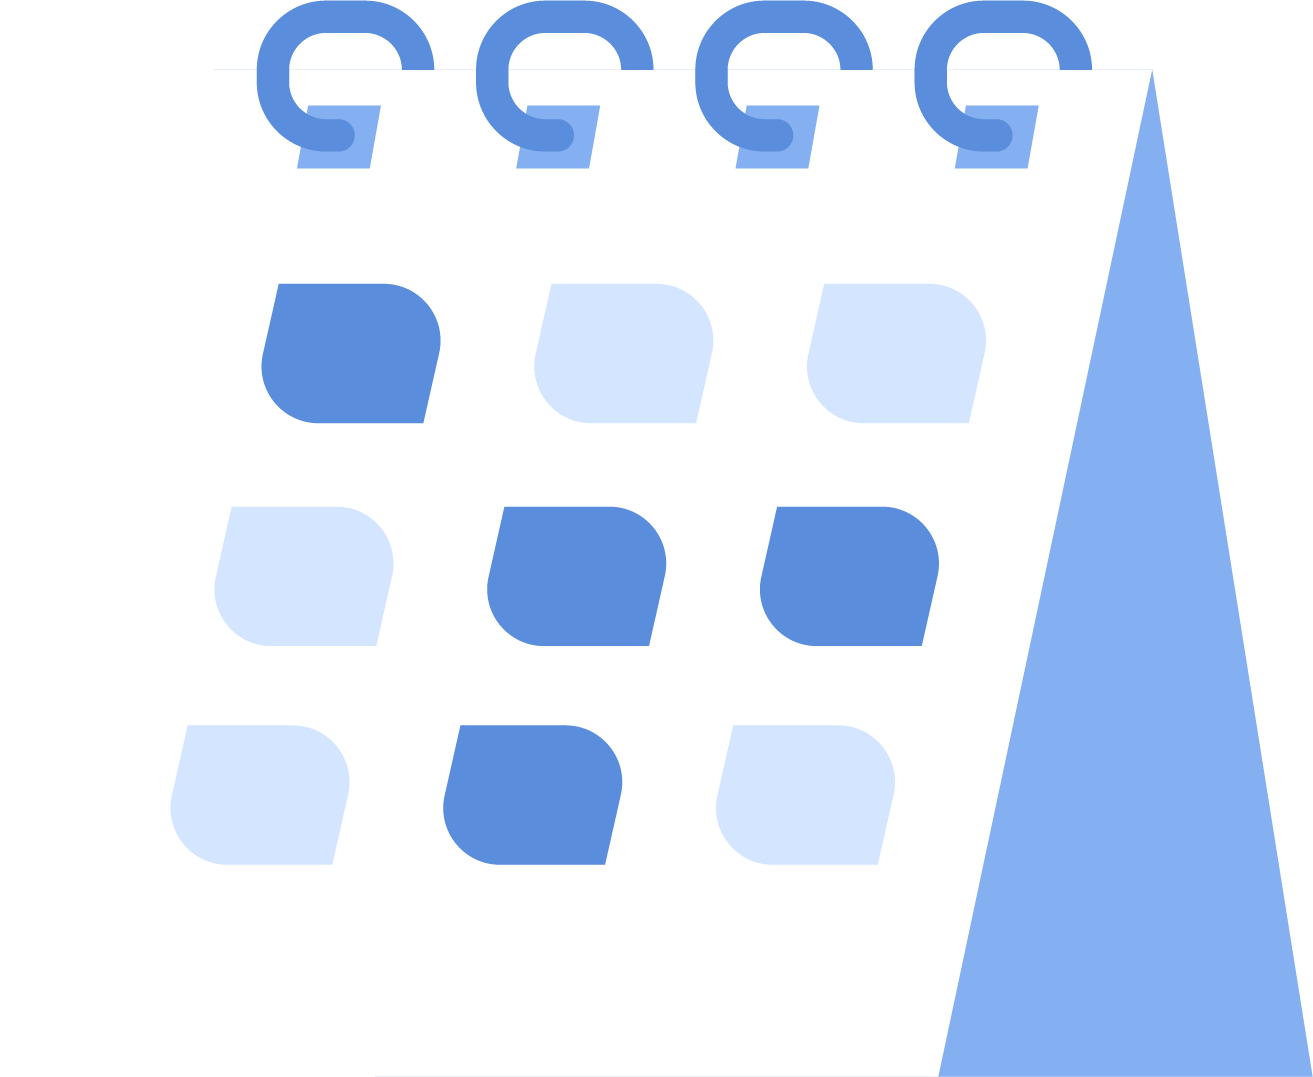 calendar to manage appeal dates and deadlines